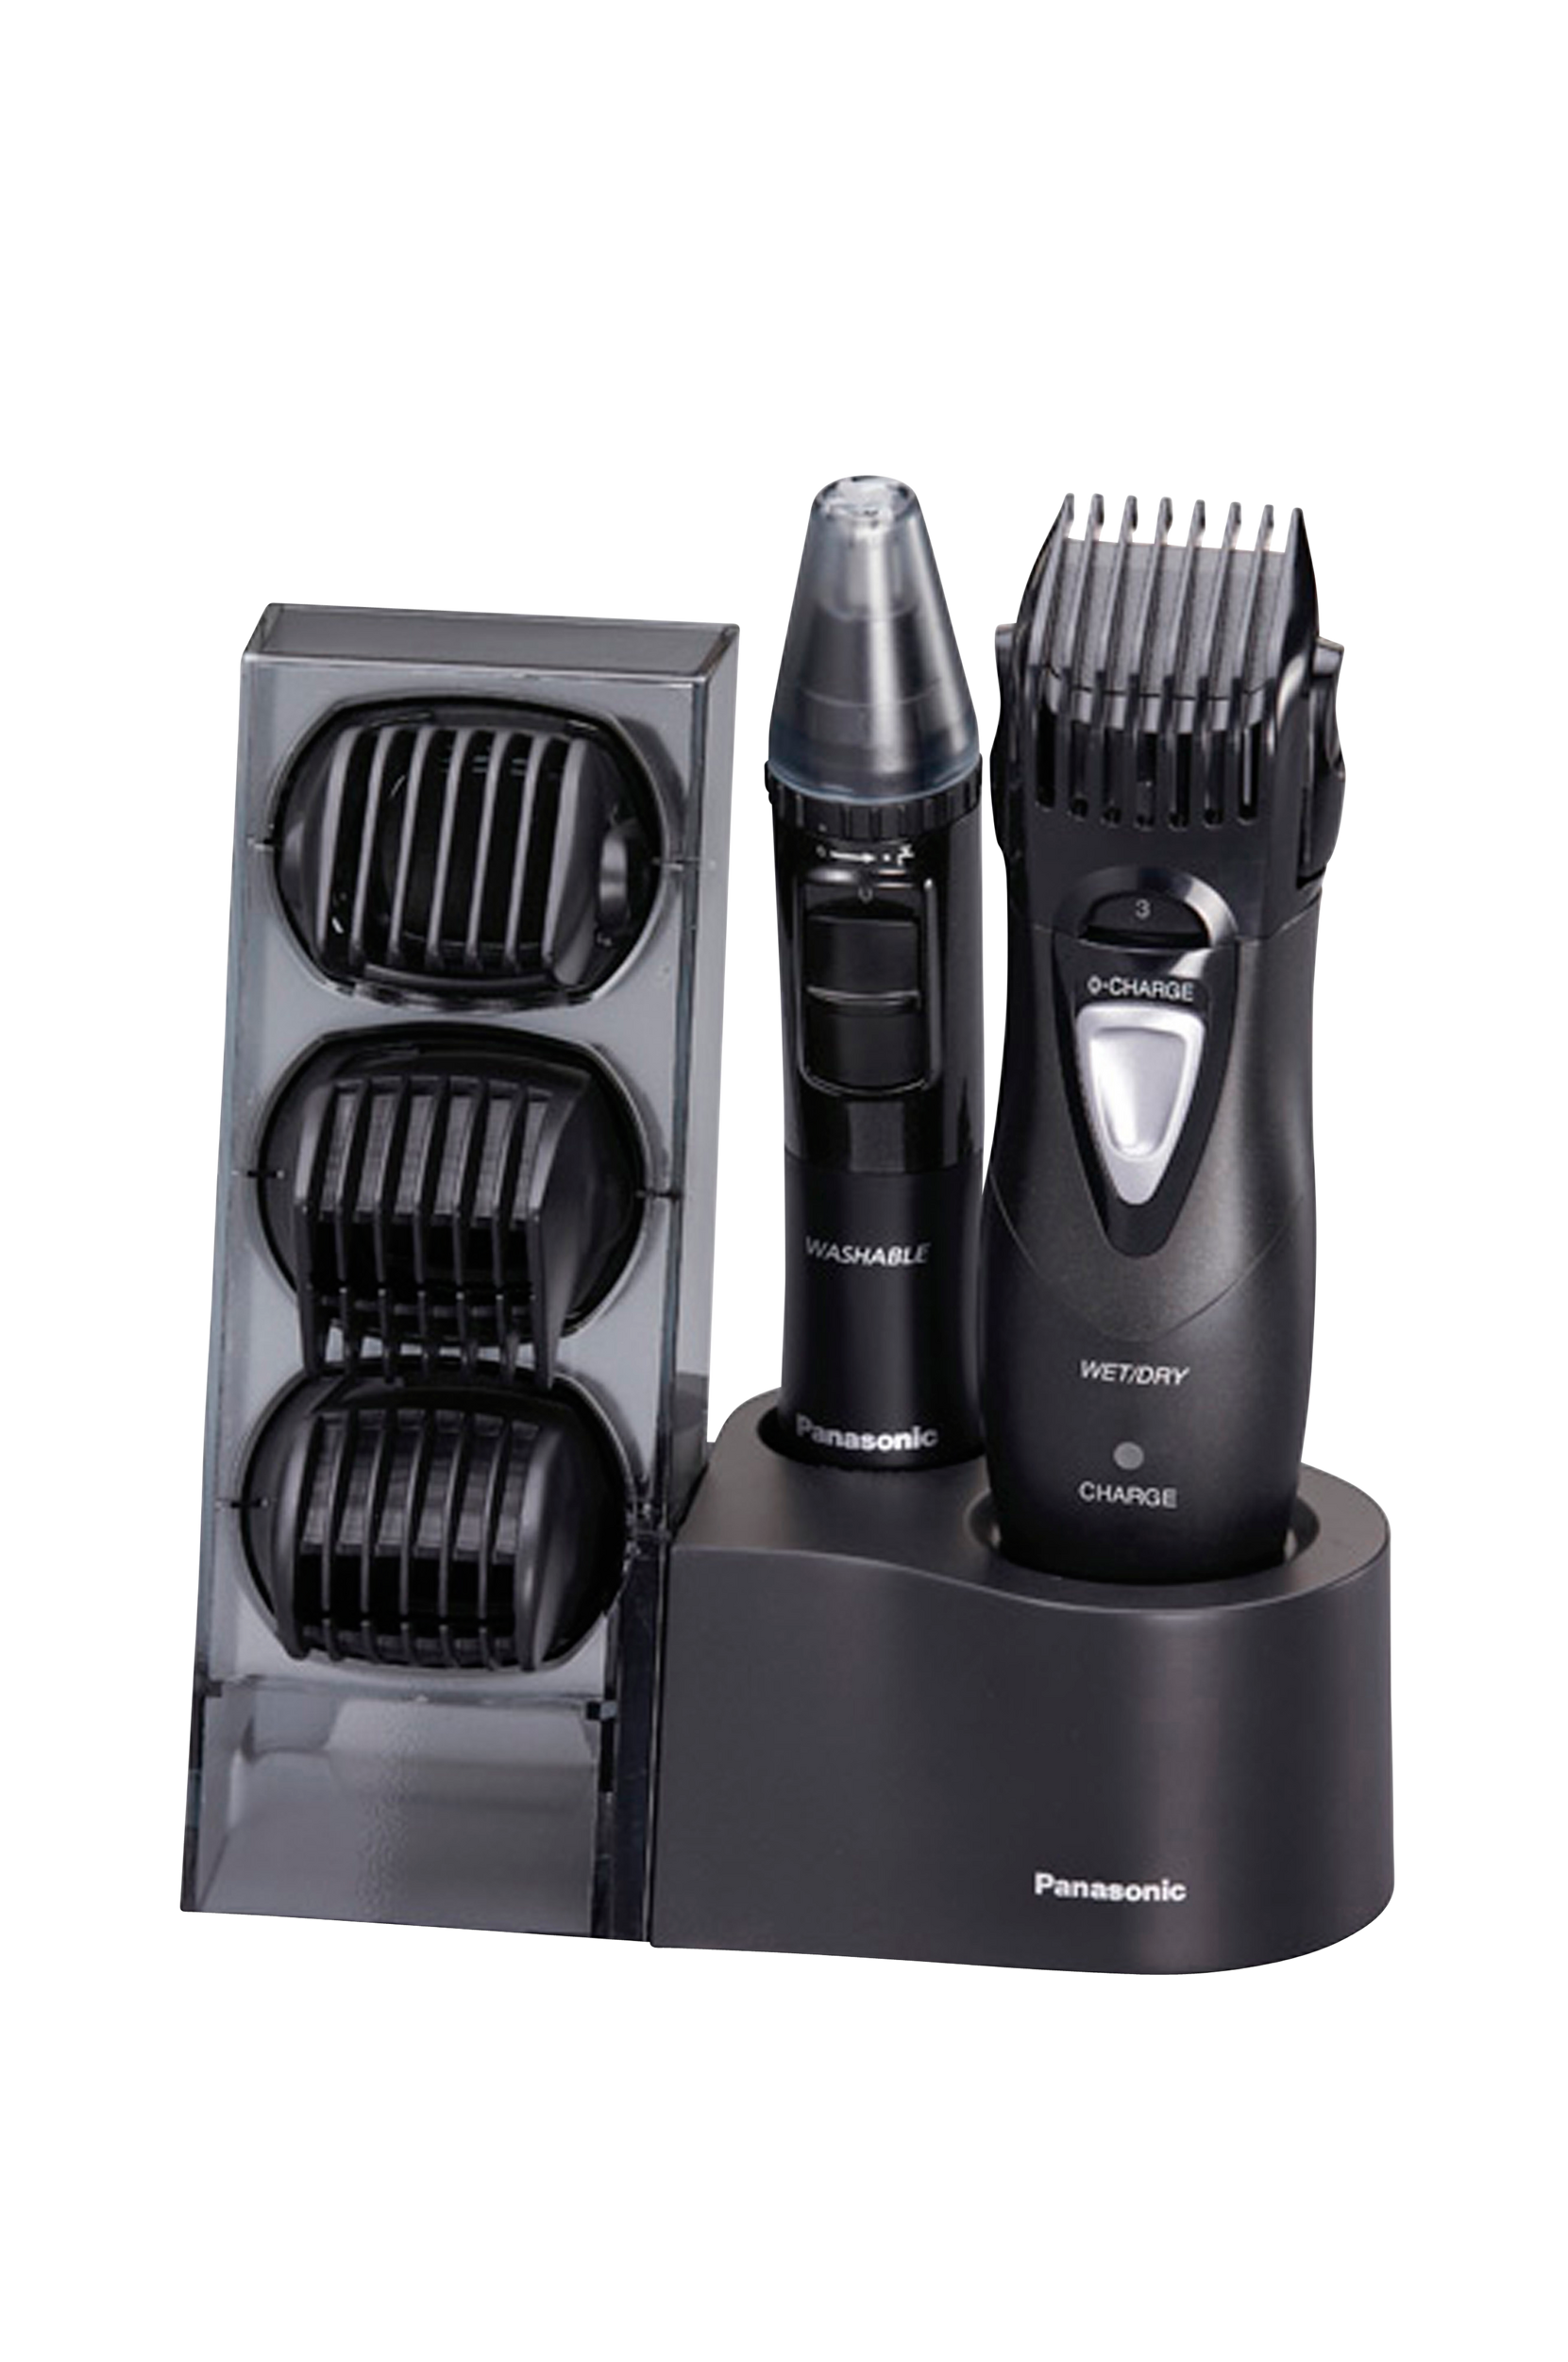 Panasonic-7-in-1 Multi Grooming Kit